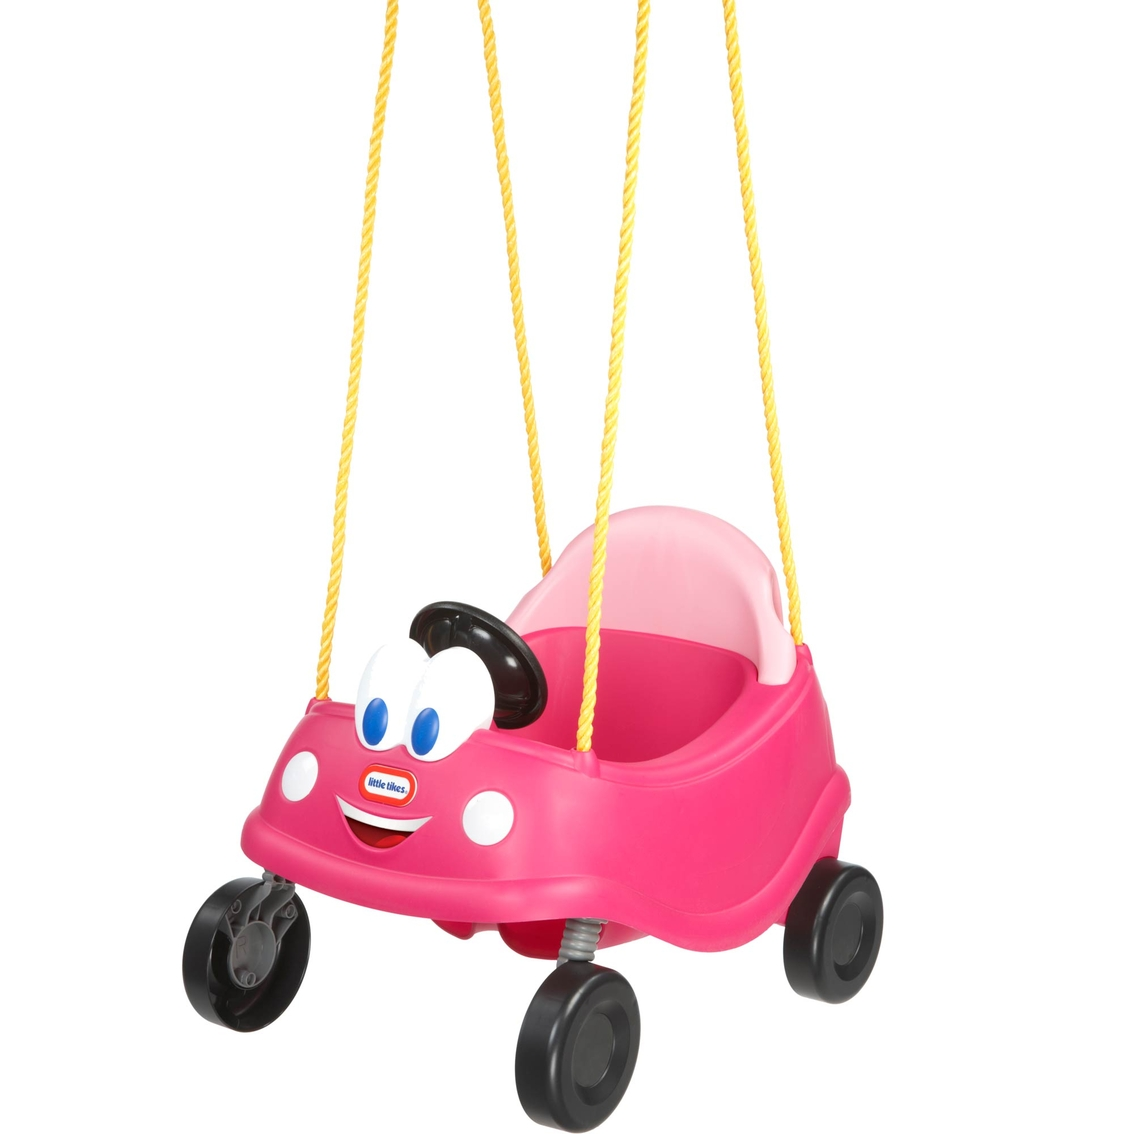 Little Tikes Princess Cozy Coupe First Swing Swingsets Slides